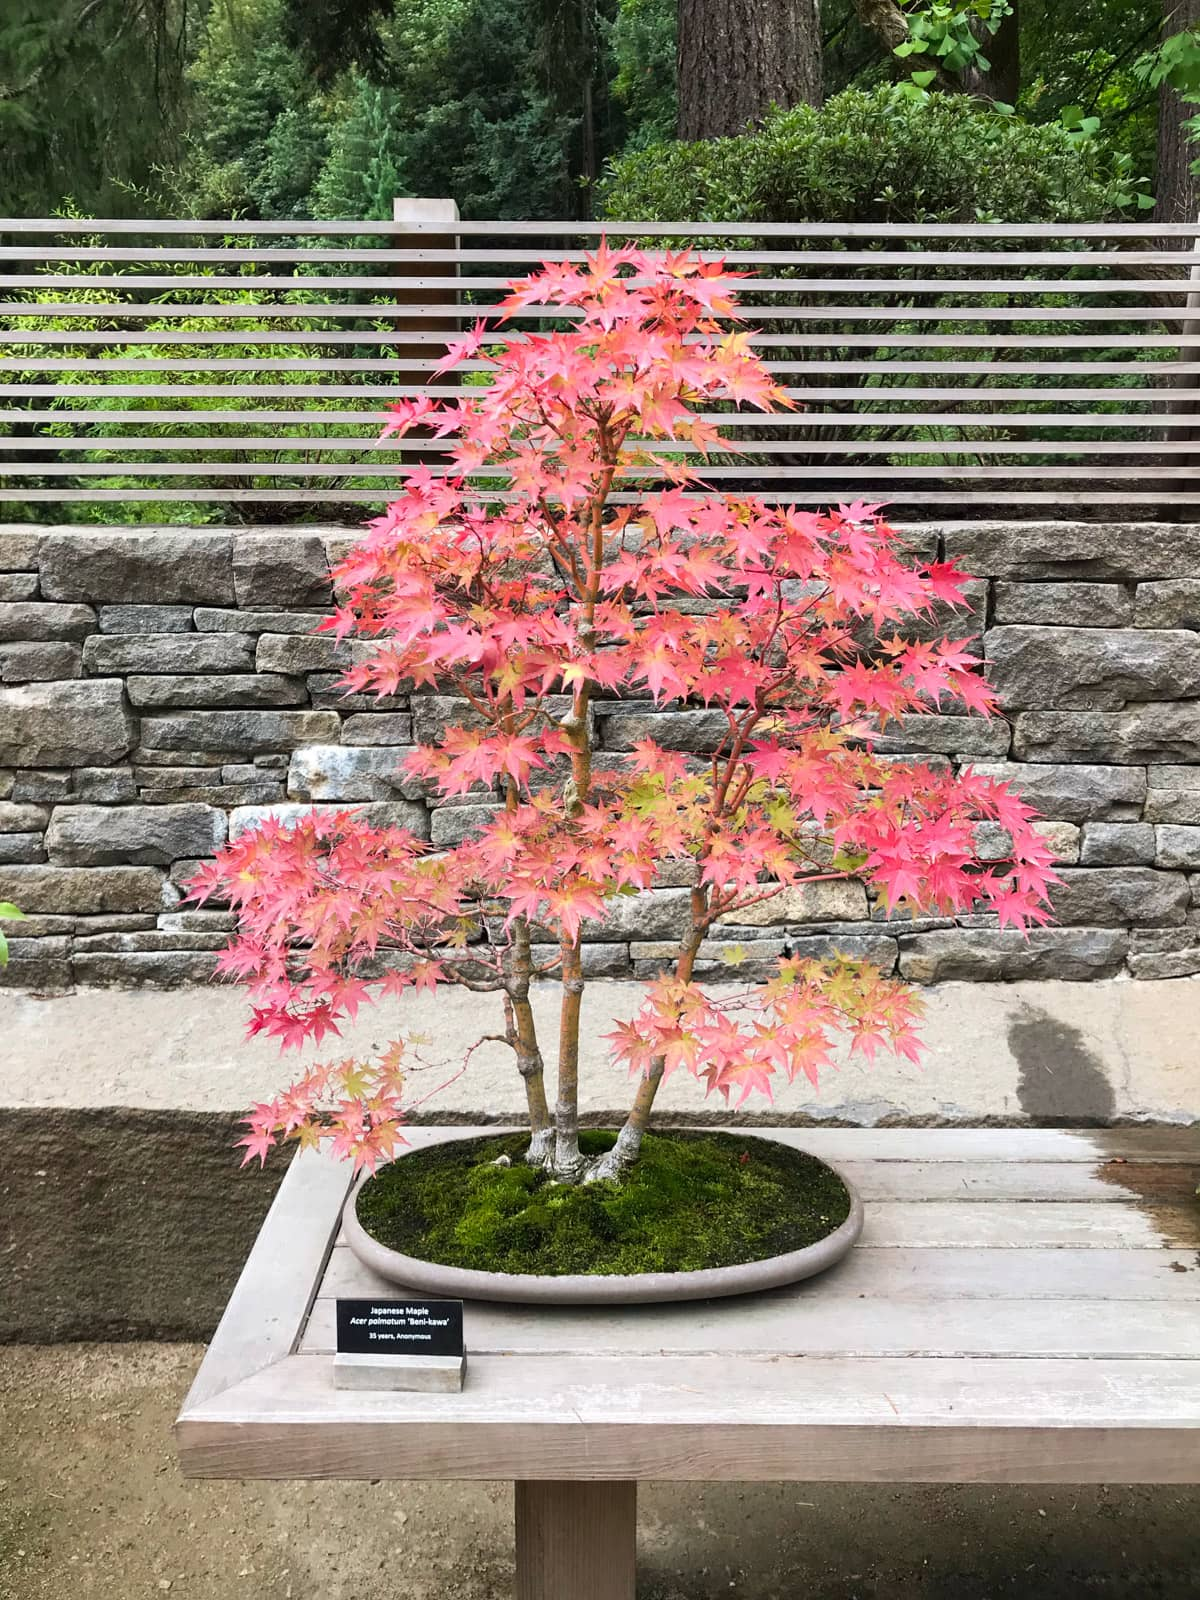 A Japanese maple, with coral red leaves, presented in a shallow plate with green moss. A small plaque next to it indicates that it is 15 years old